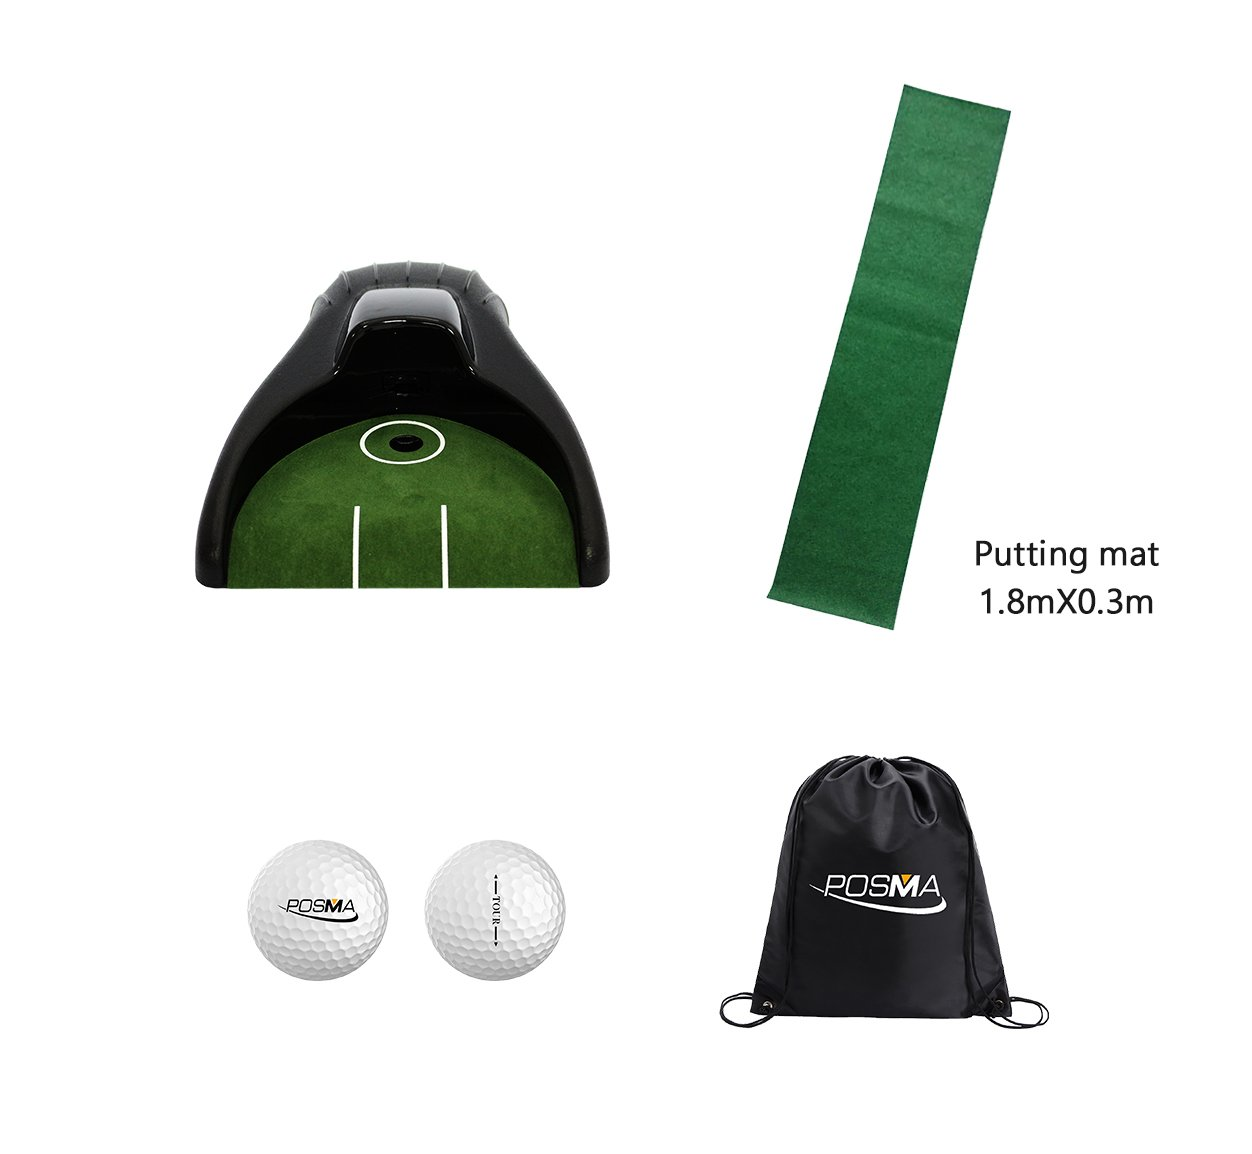 POSMA PG150B Golf Putter Training Putting Trainer Bundle Gift Set with Kickback Putt Cup, 6ft x 1ft Putt Mat, 2pcs Tour Ball, and Cinch Sack Carry Bag Golf Training Aid